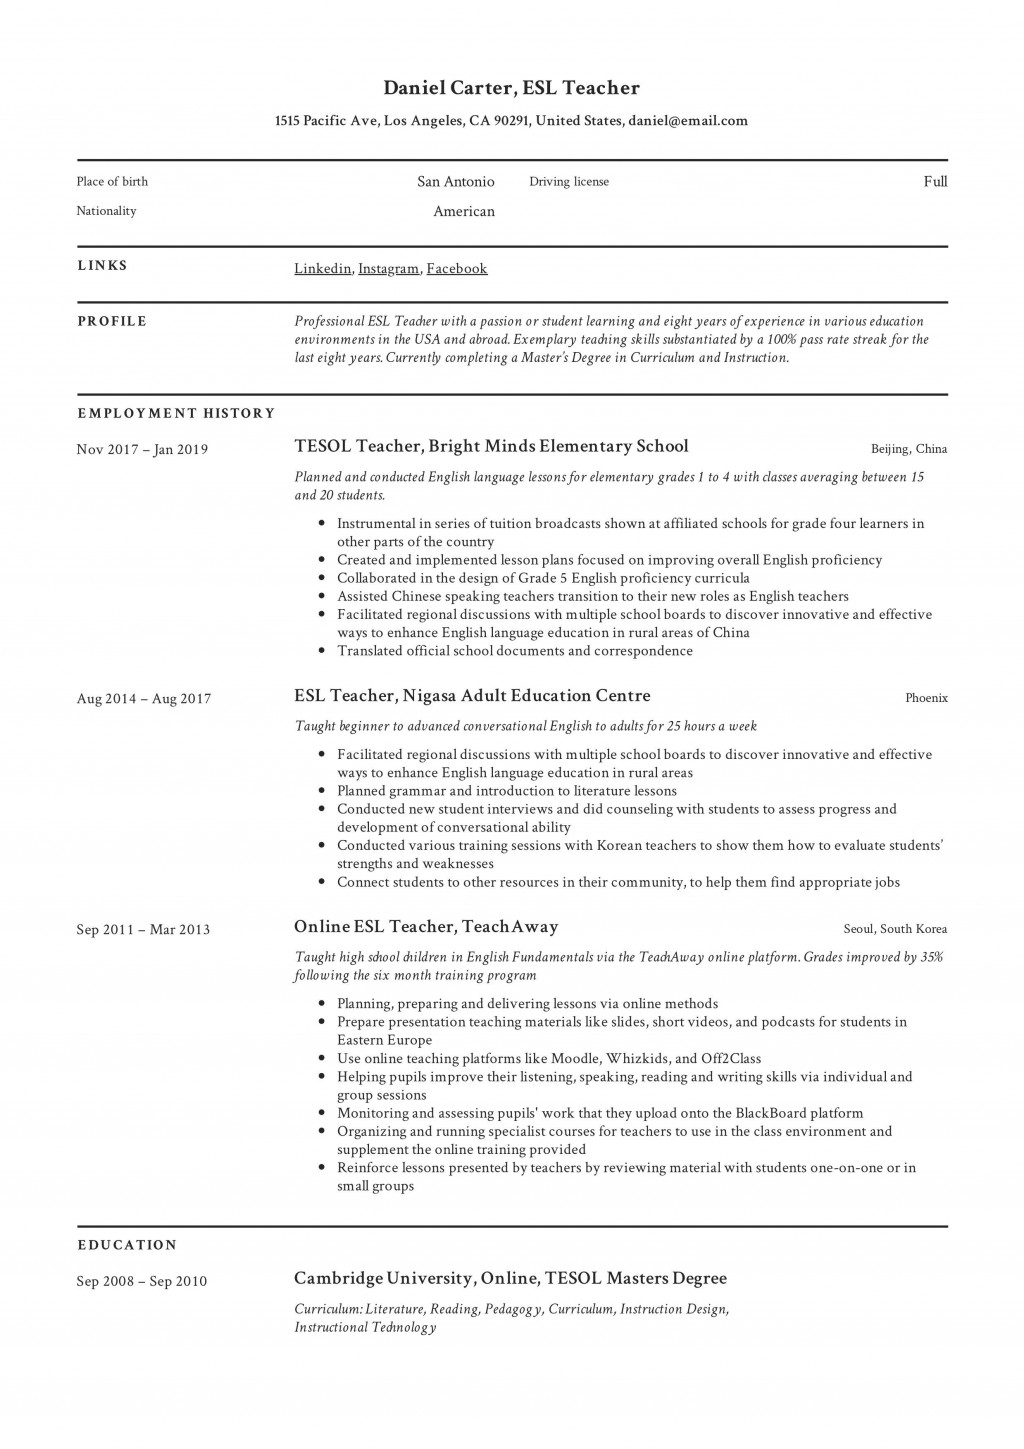 004 Dreaded Good Resume For Teaching Job Image  Sample With Experience Pdf Fresher In IndiaLarge